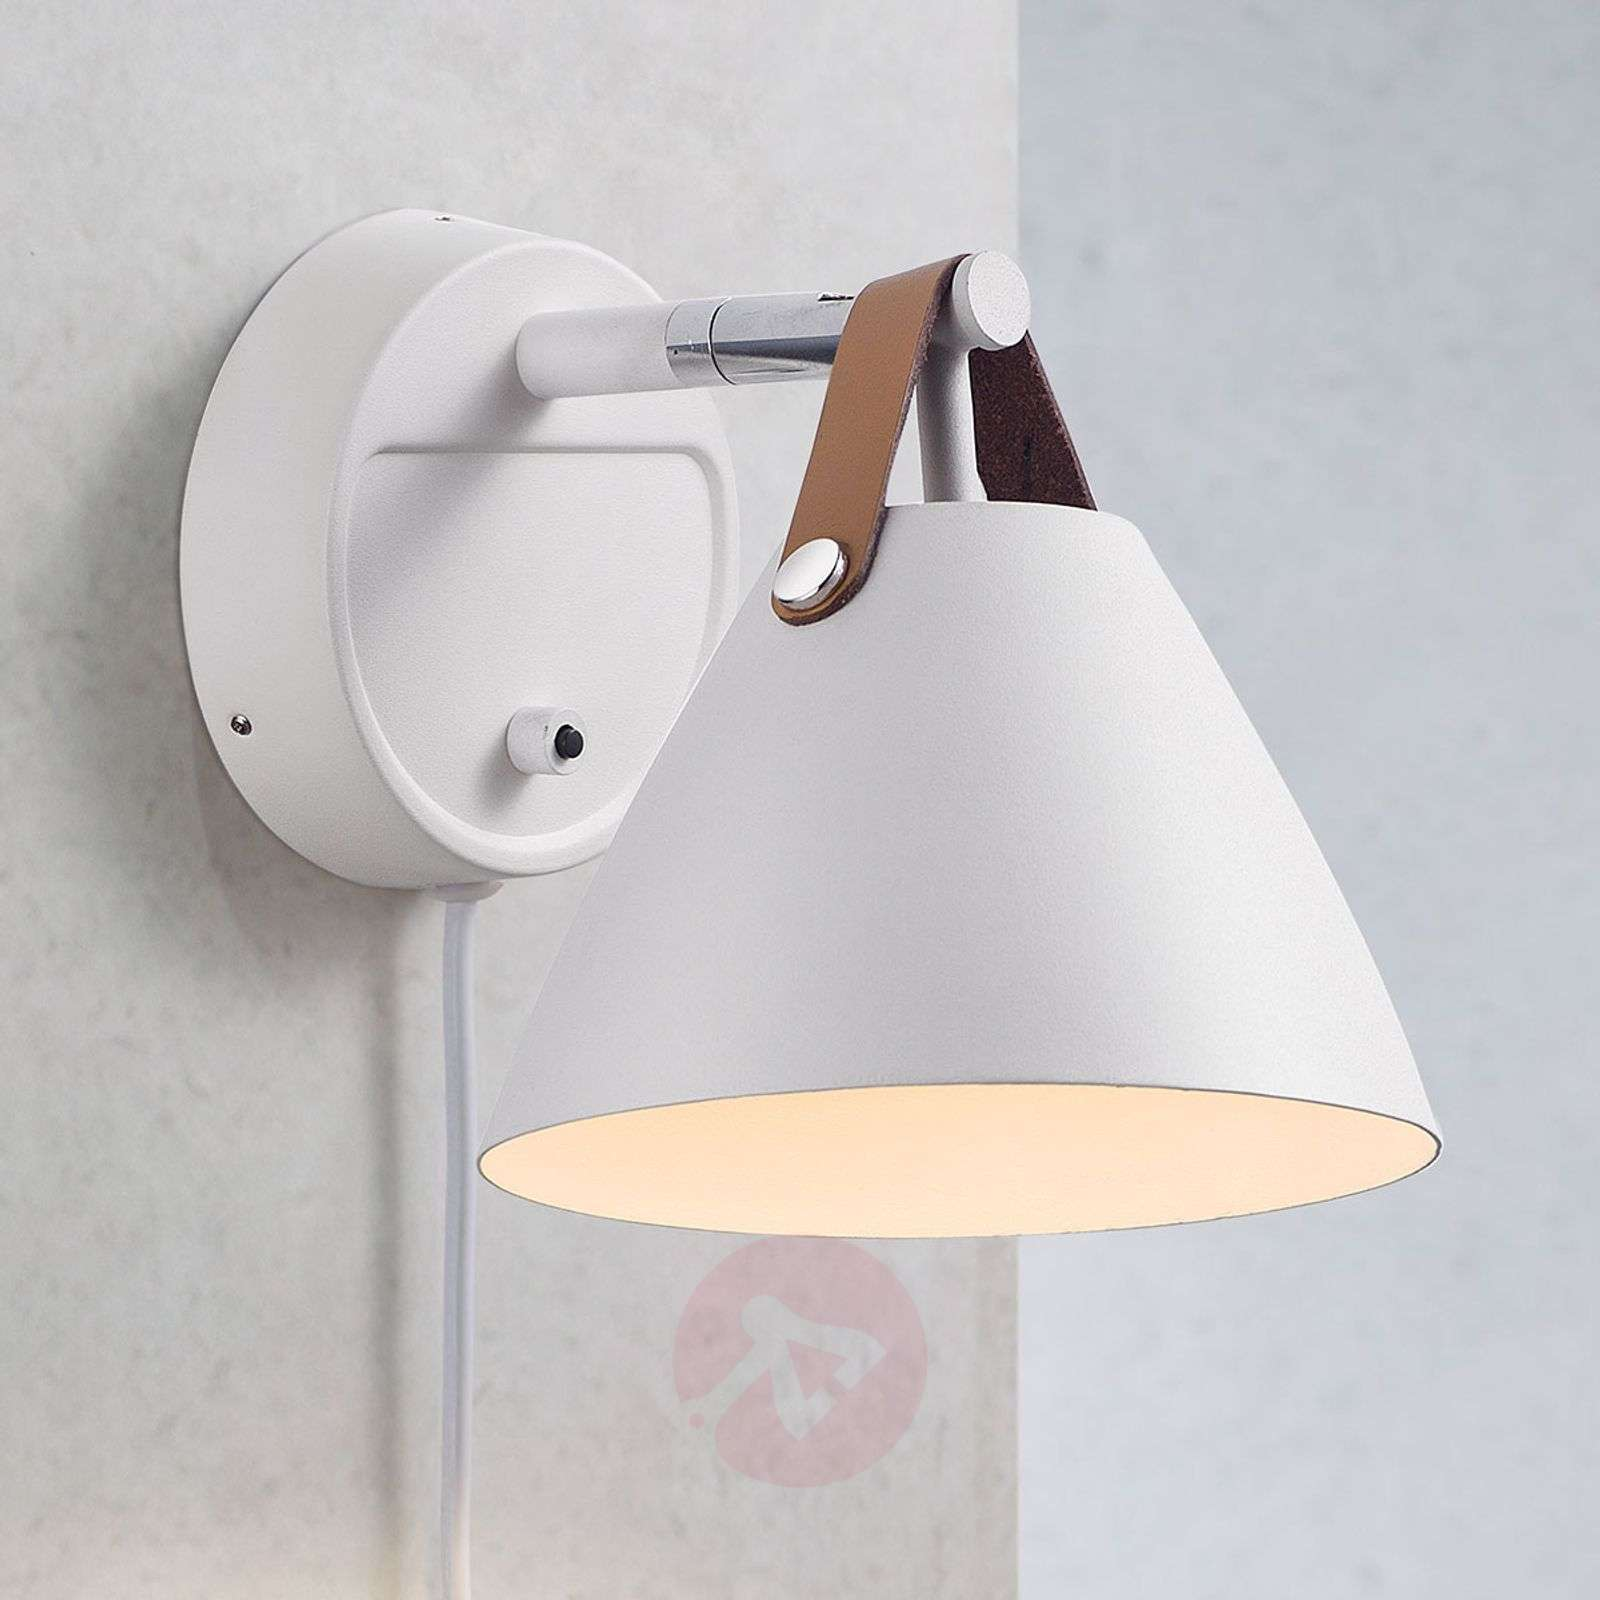 Strap wall light with a leather strap, white-7006074-01